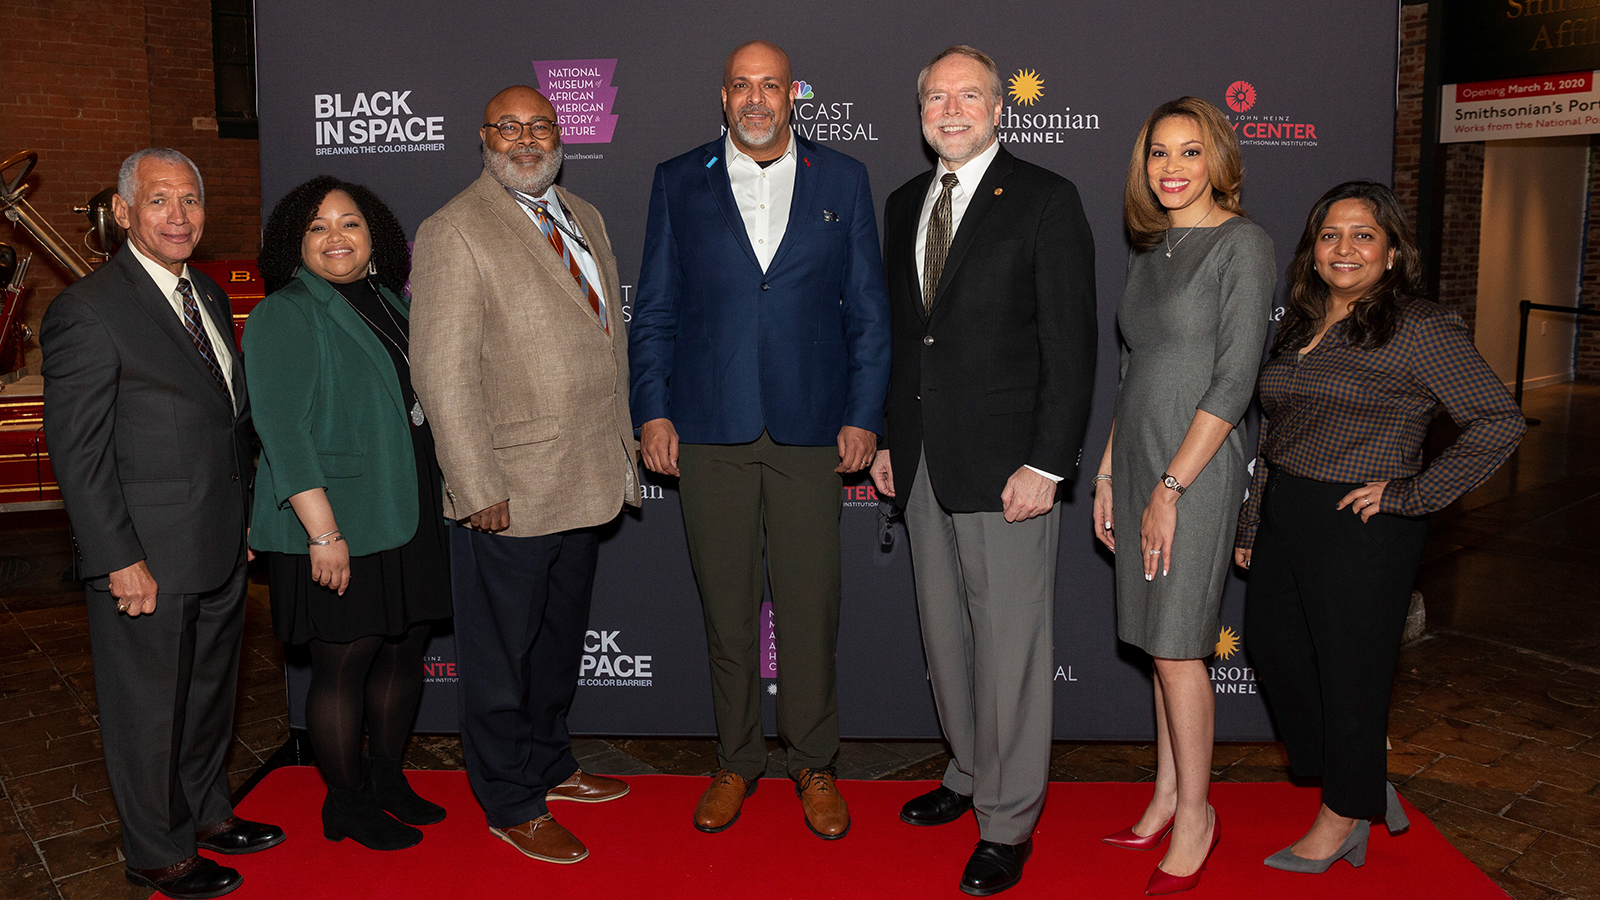 Senior leaders from Comcast on the red carpet at a private movie screening.